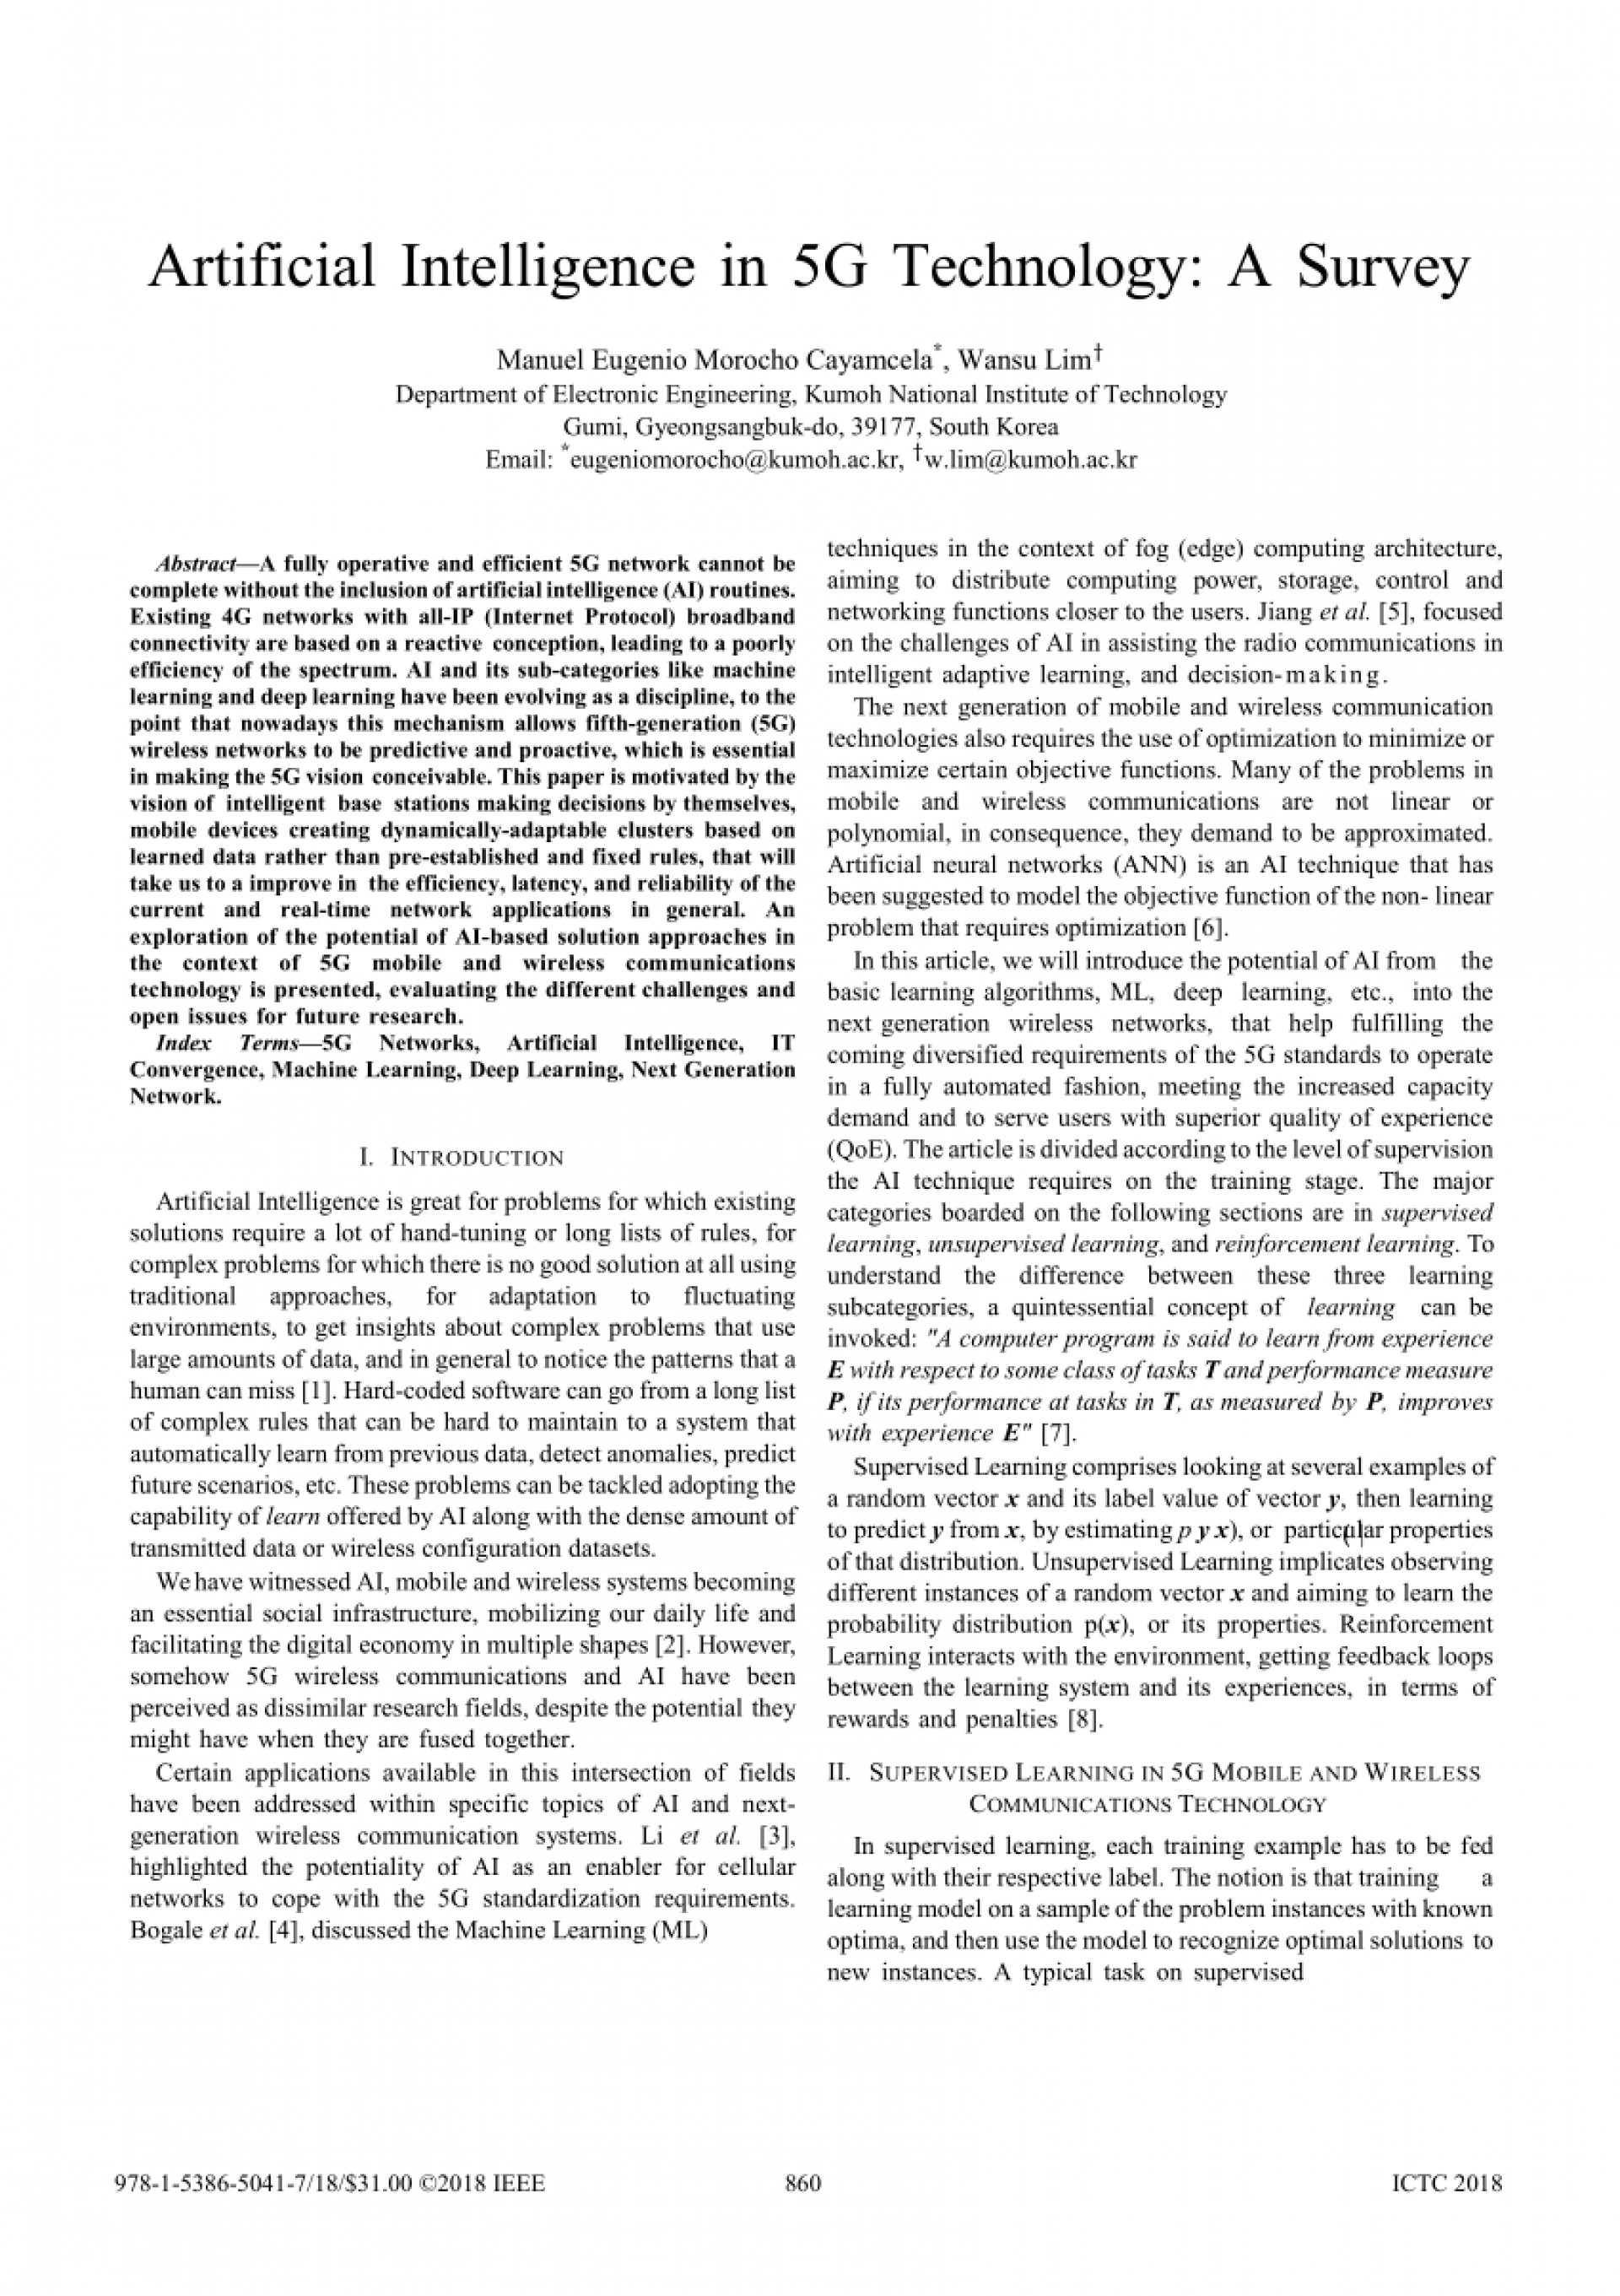 004 Artificial Intelligence Research Paper Ieee Impressive 2018 1920